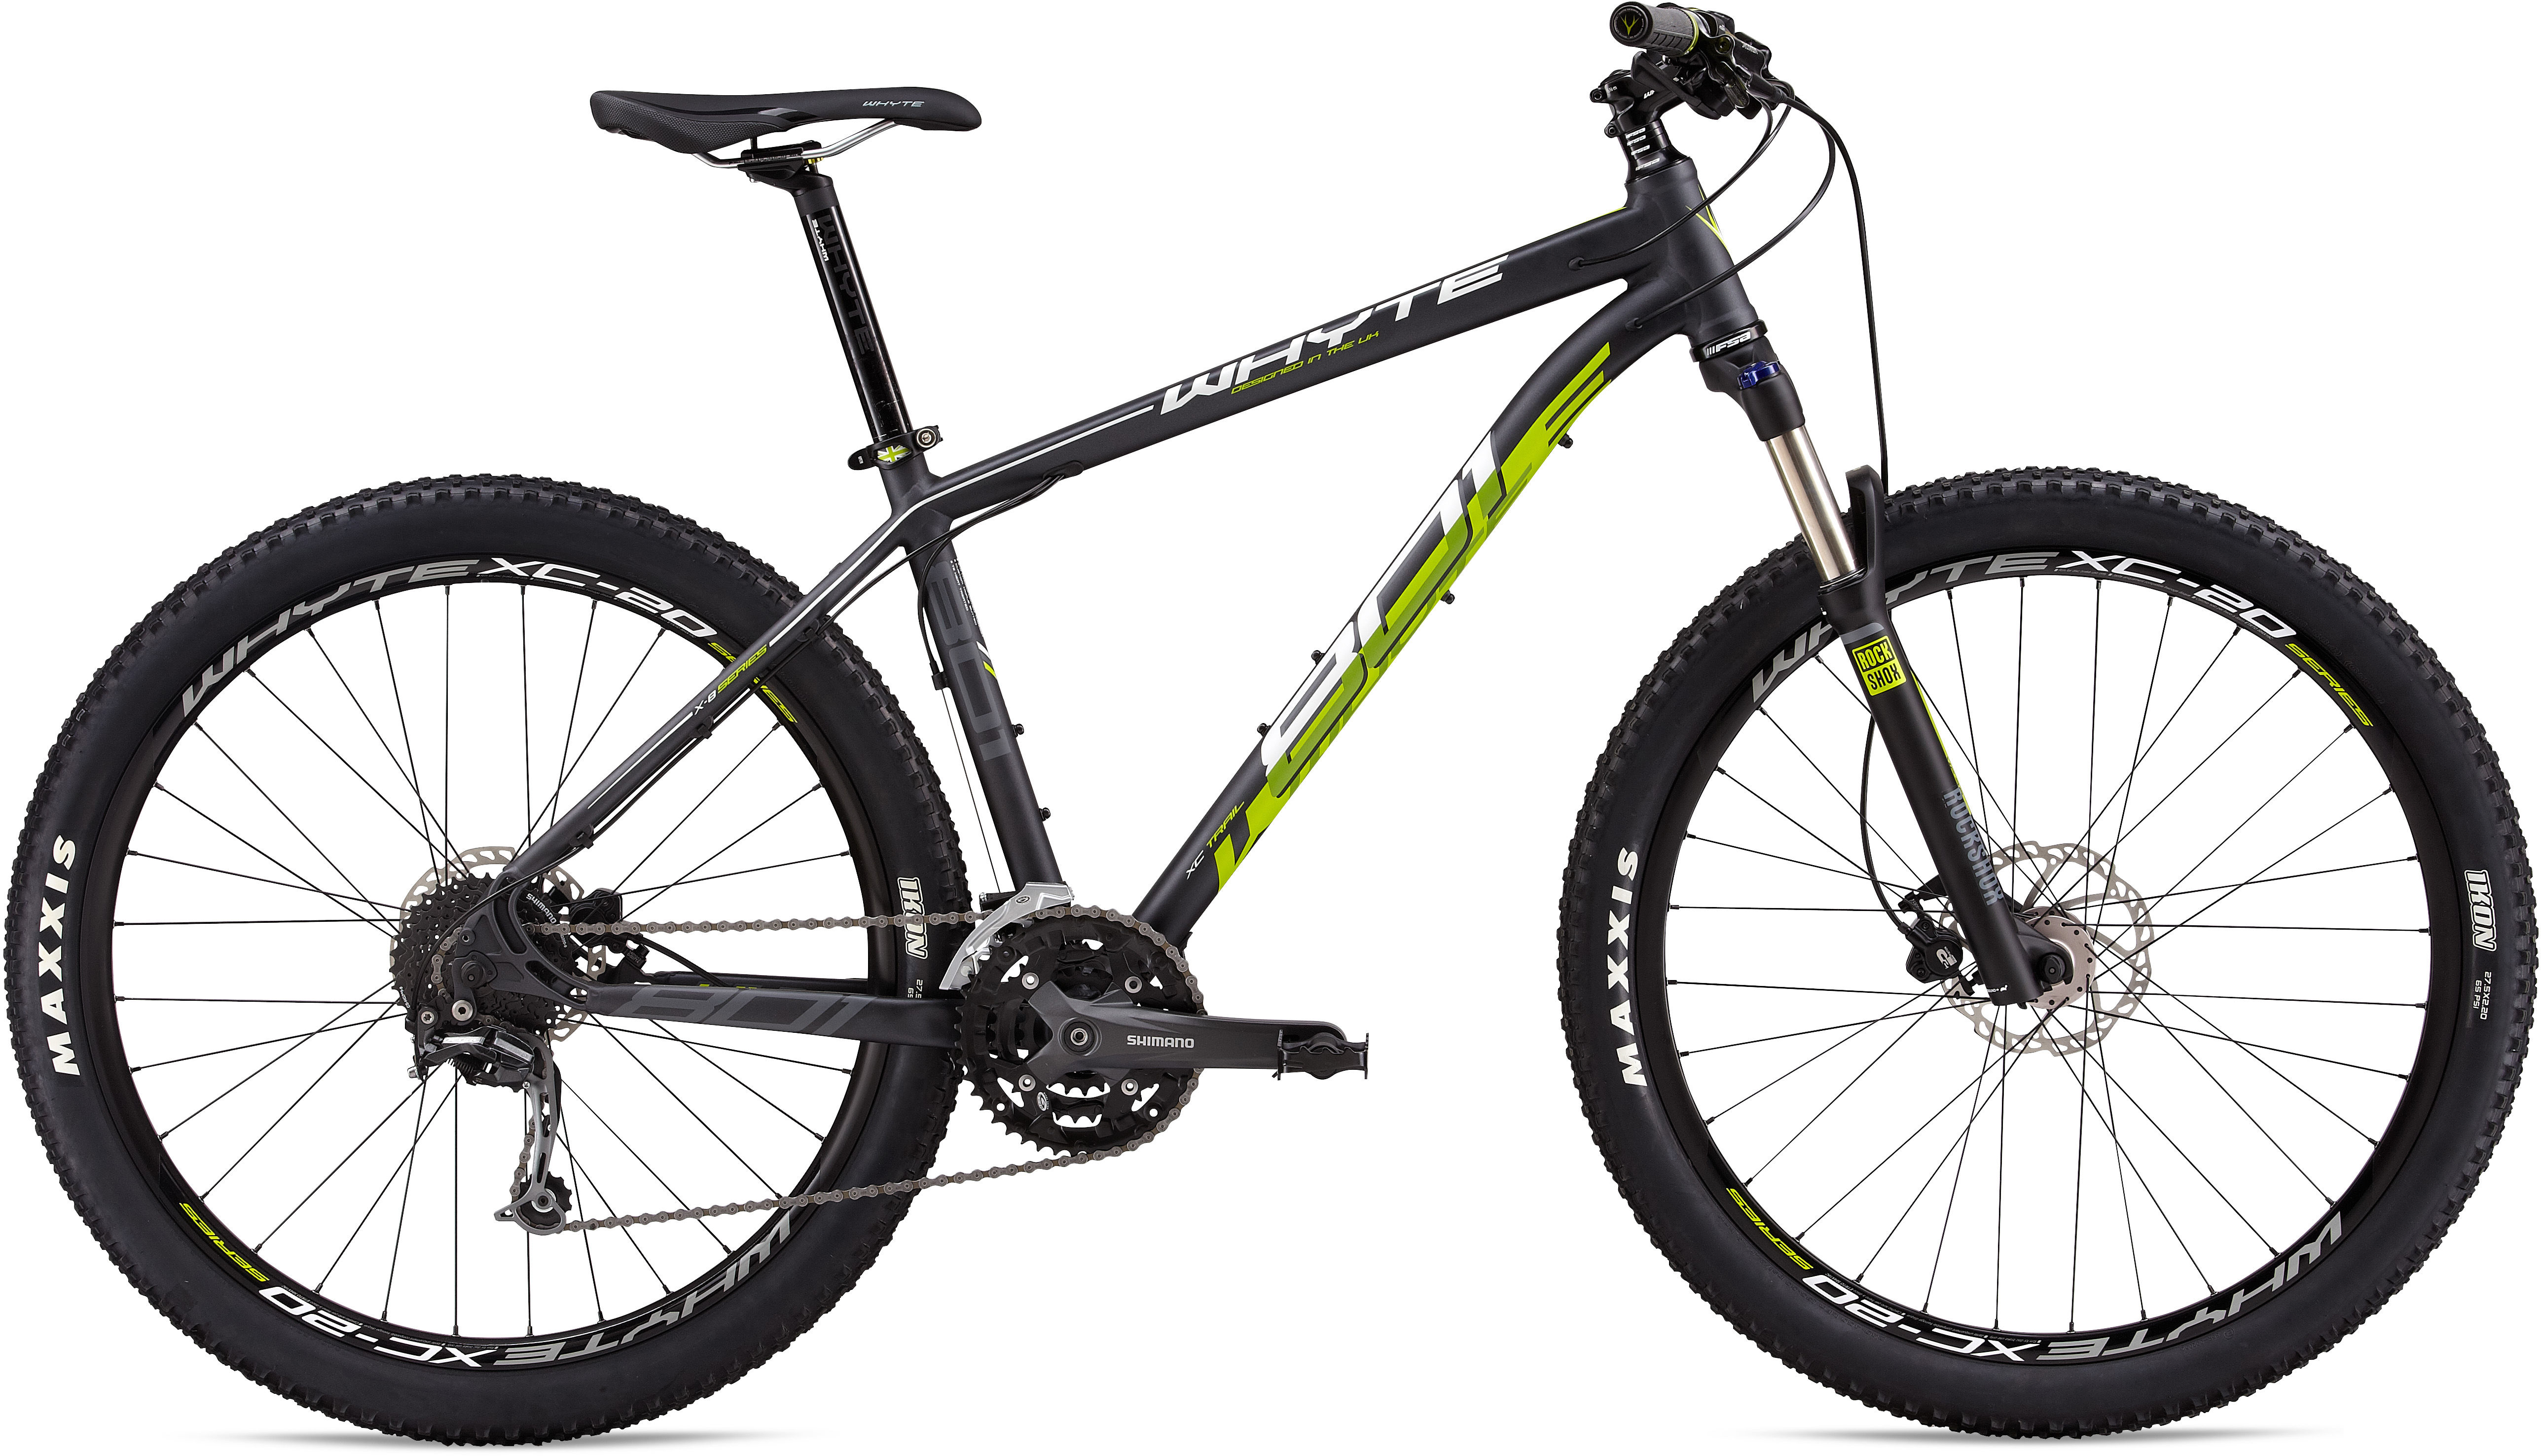 d208856fc7c Whyte 801 2015 review - The Bike List